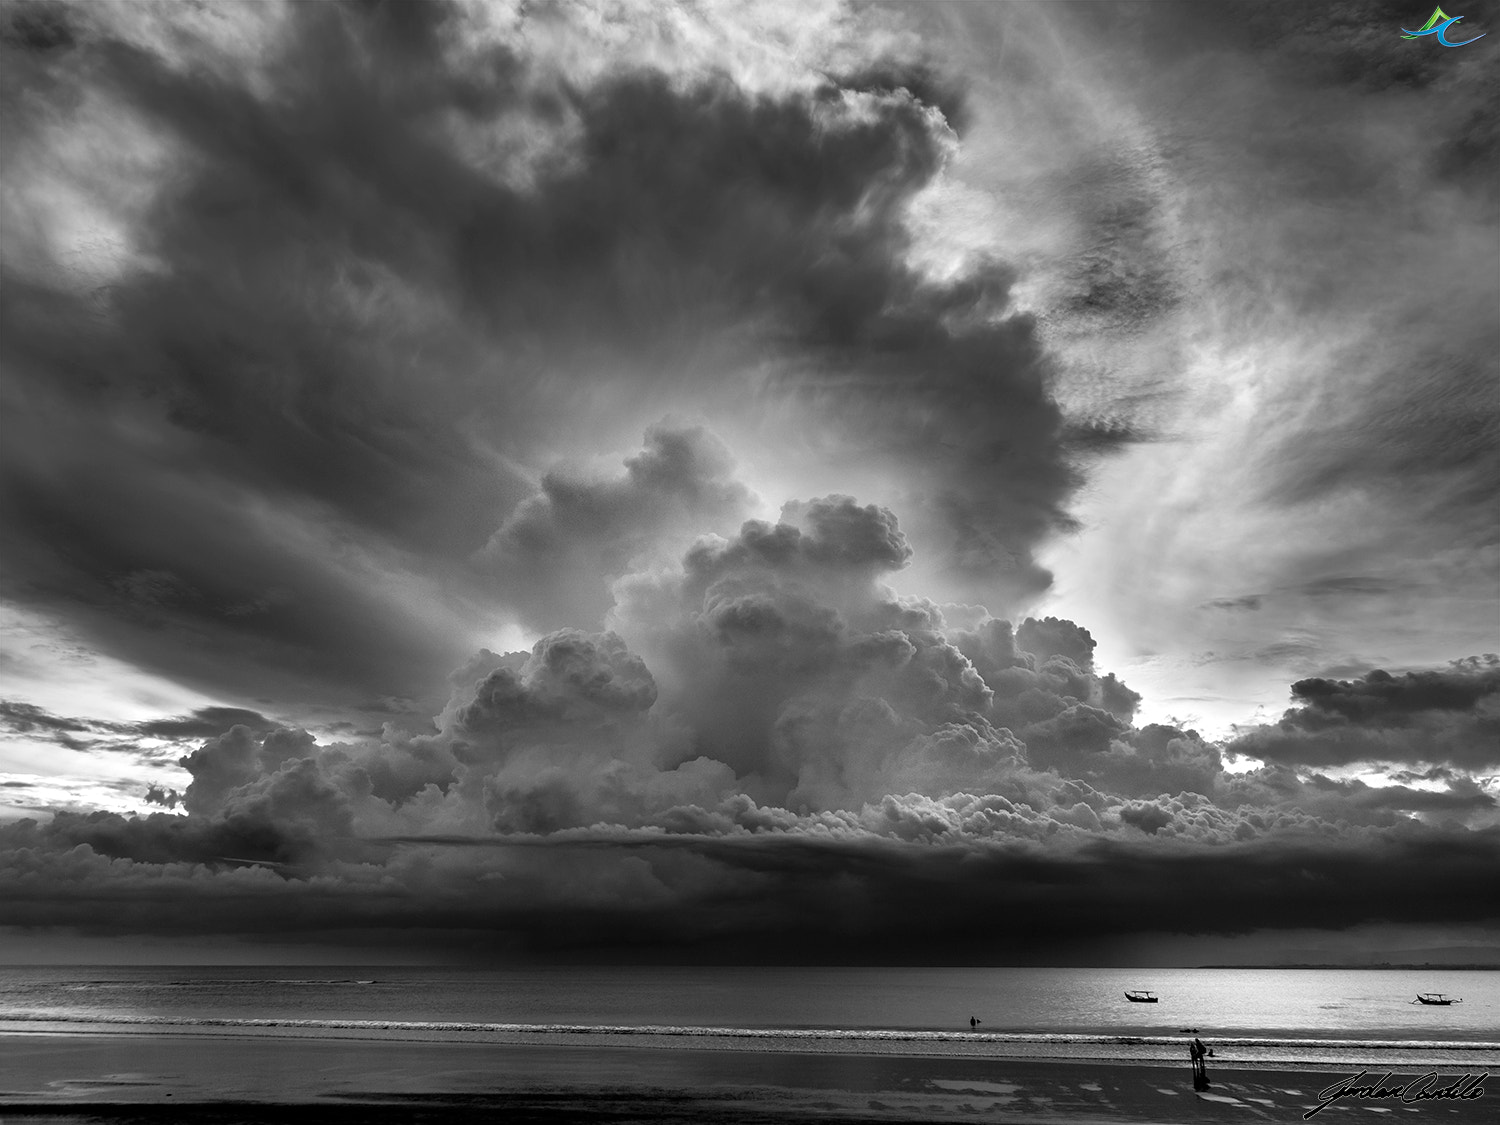 Photograph Tropical Storms in Bali by Jordan  Cantelo on 500px